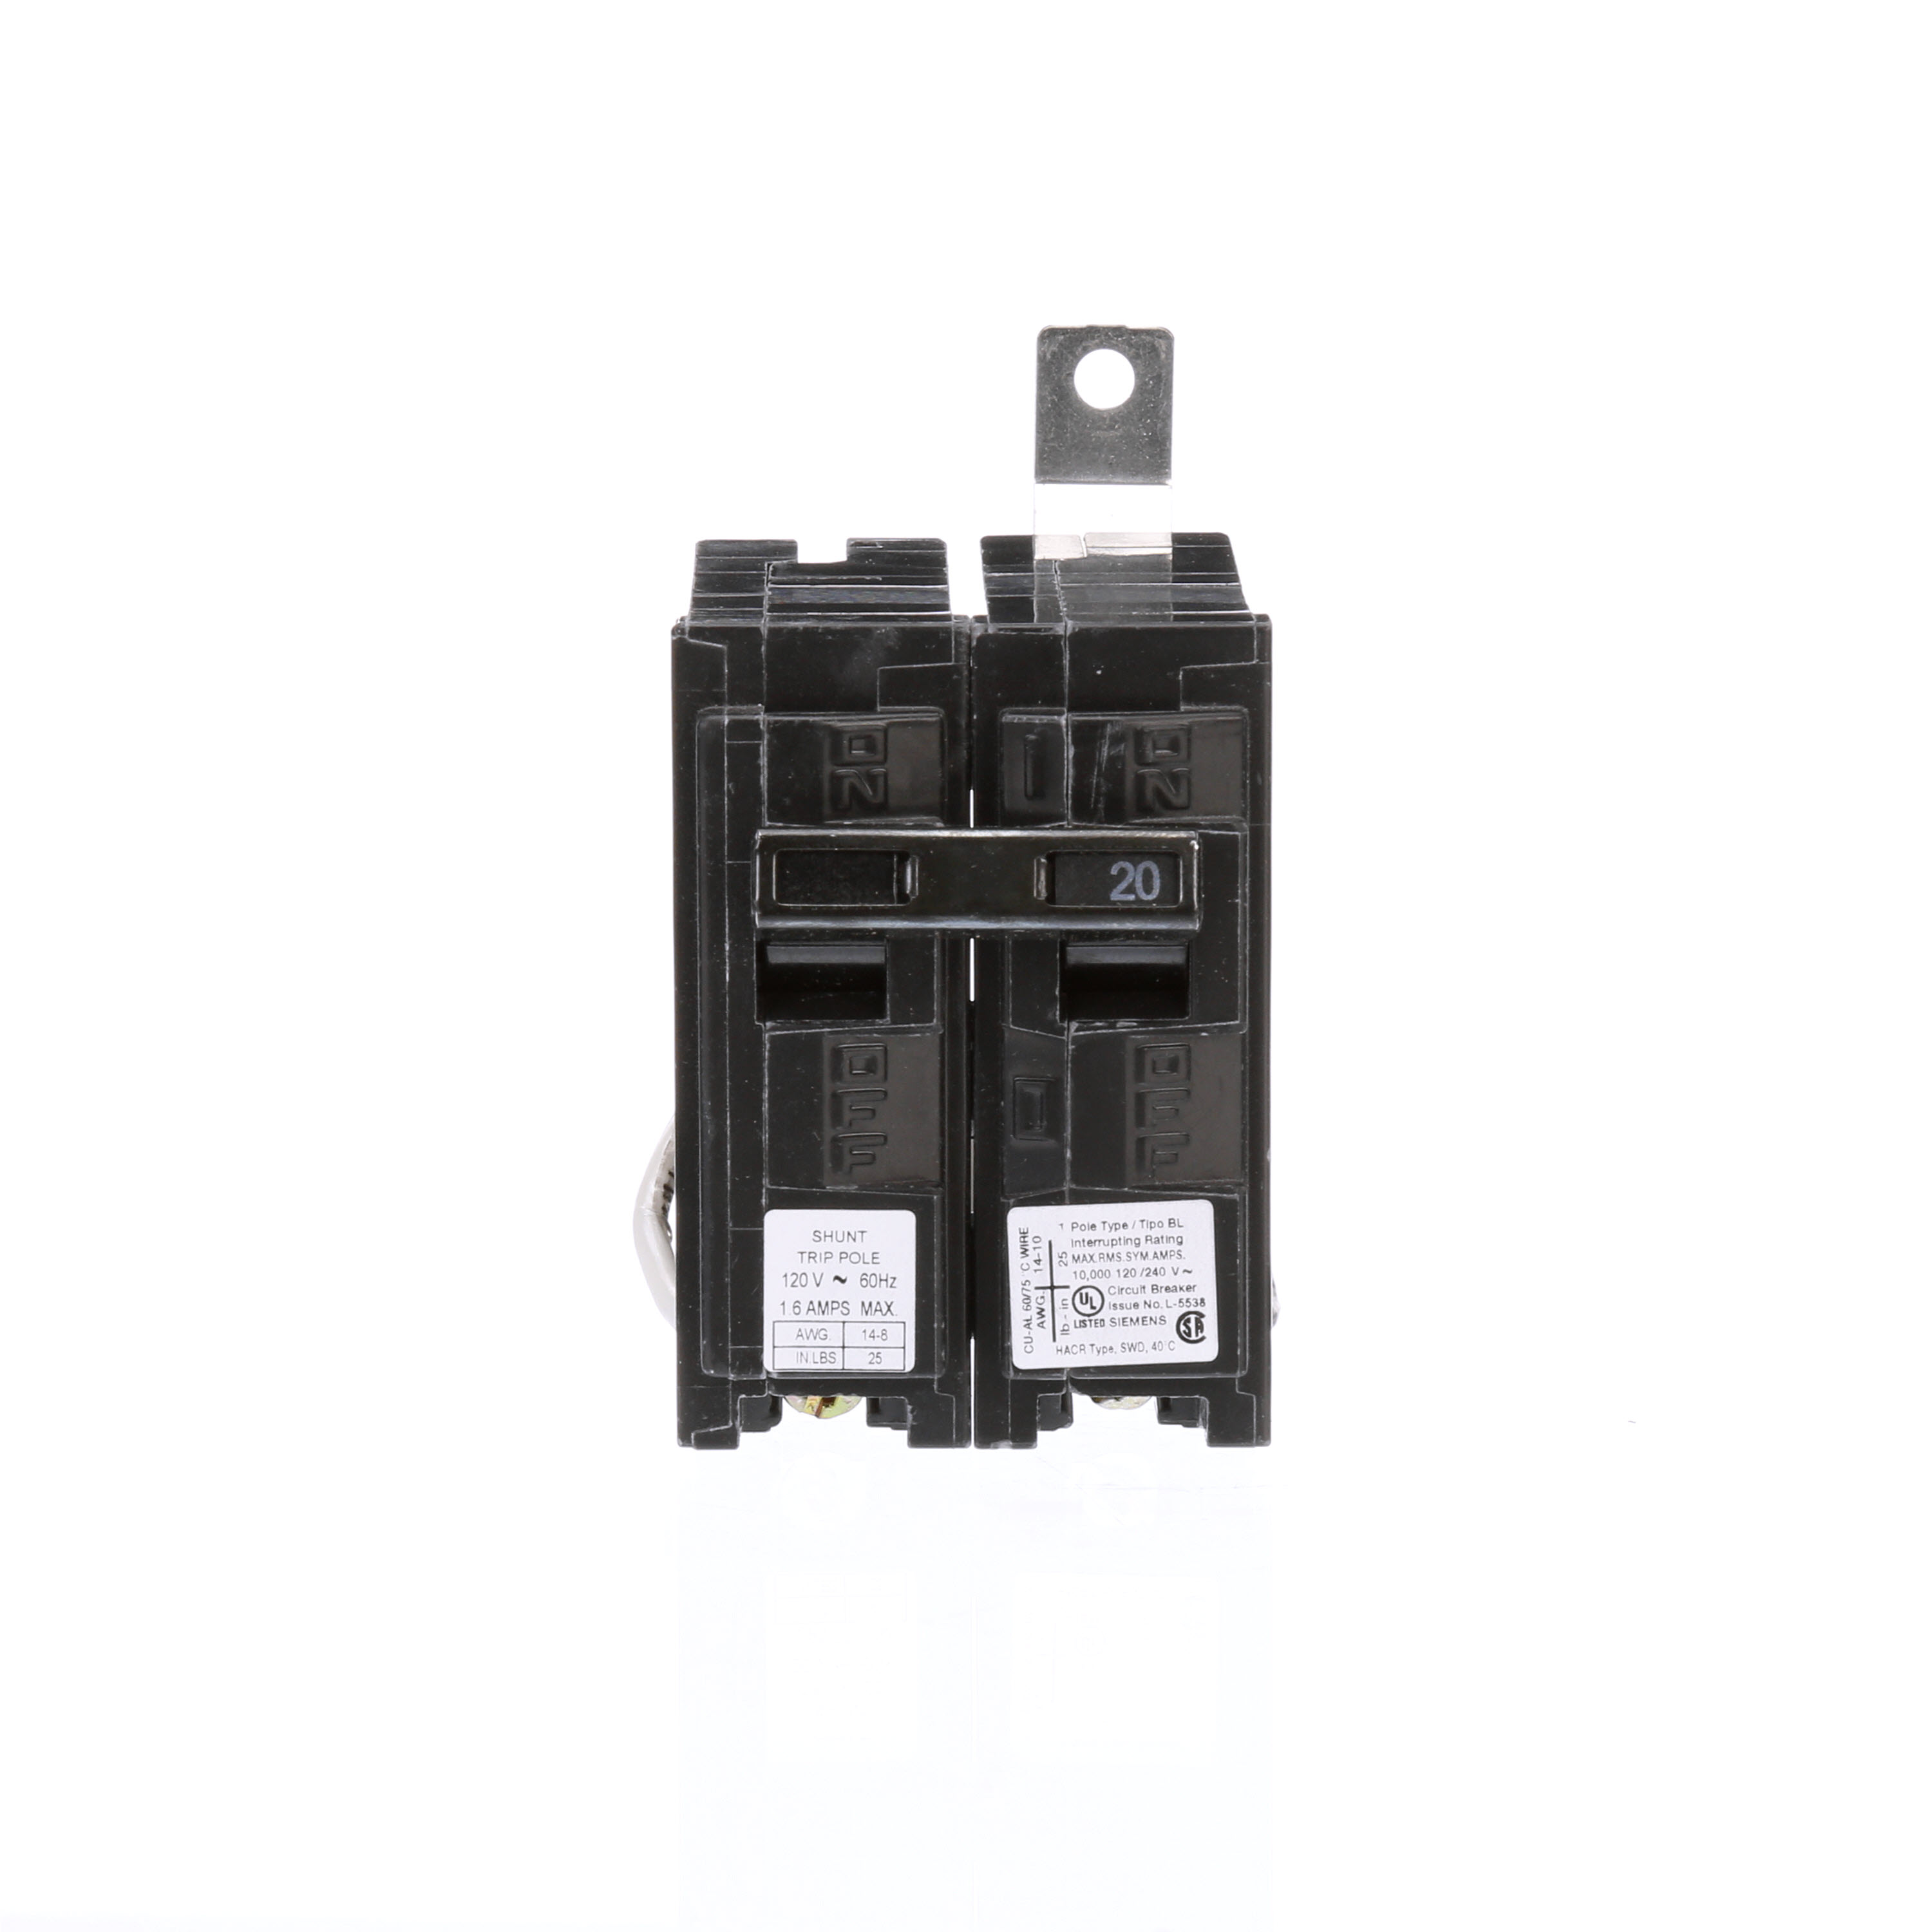 Electrical Distribution & Generation Equip Circuit Breakers 120V ...